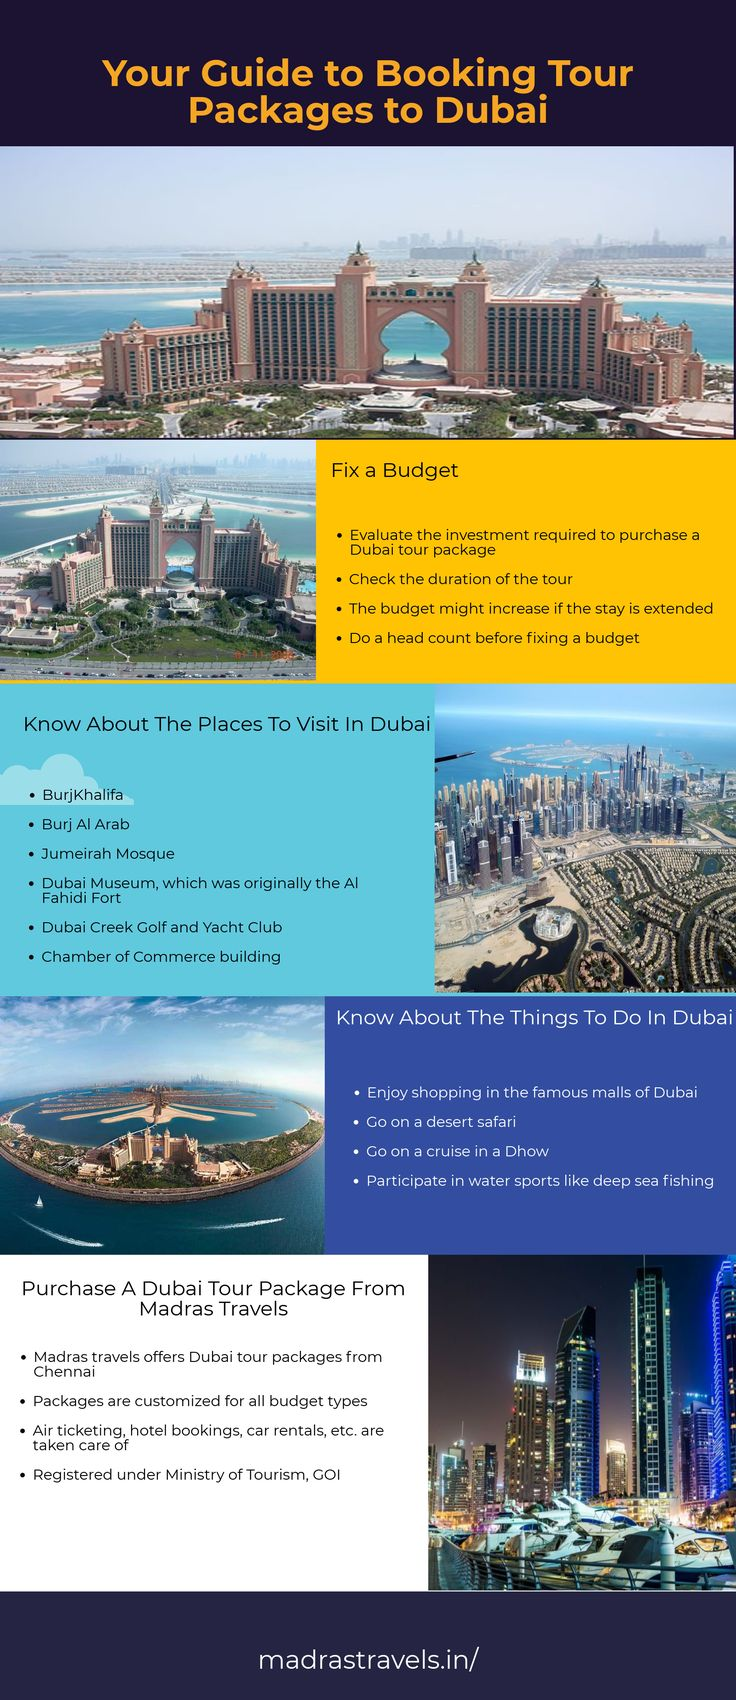 Planning to visit Dubai for the best affordable prices from Chennai, then Madras Travels help you out here. We have best customized Dubai tour packages from Chennai for all budget types.